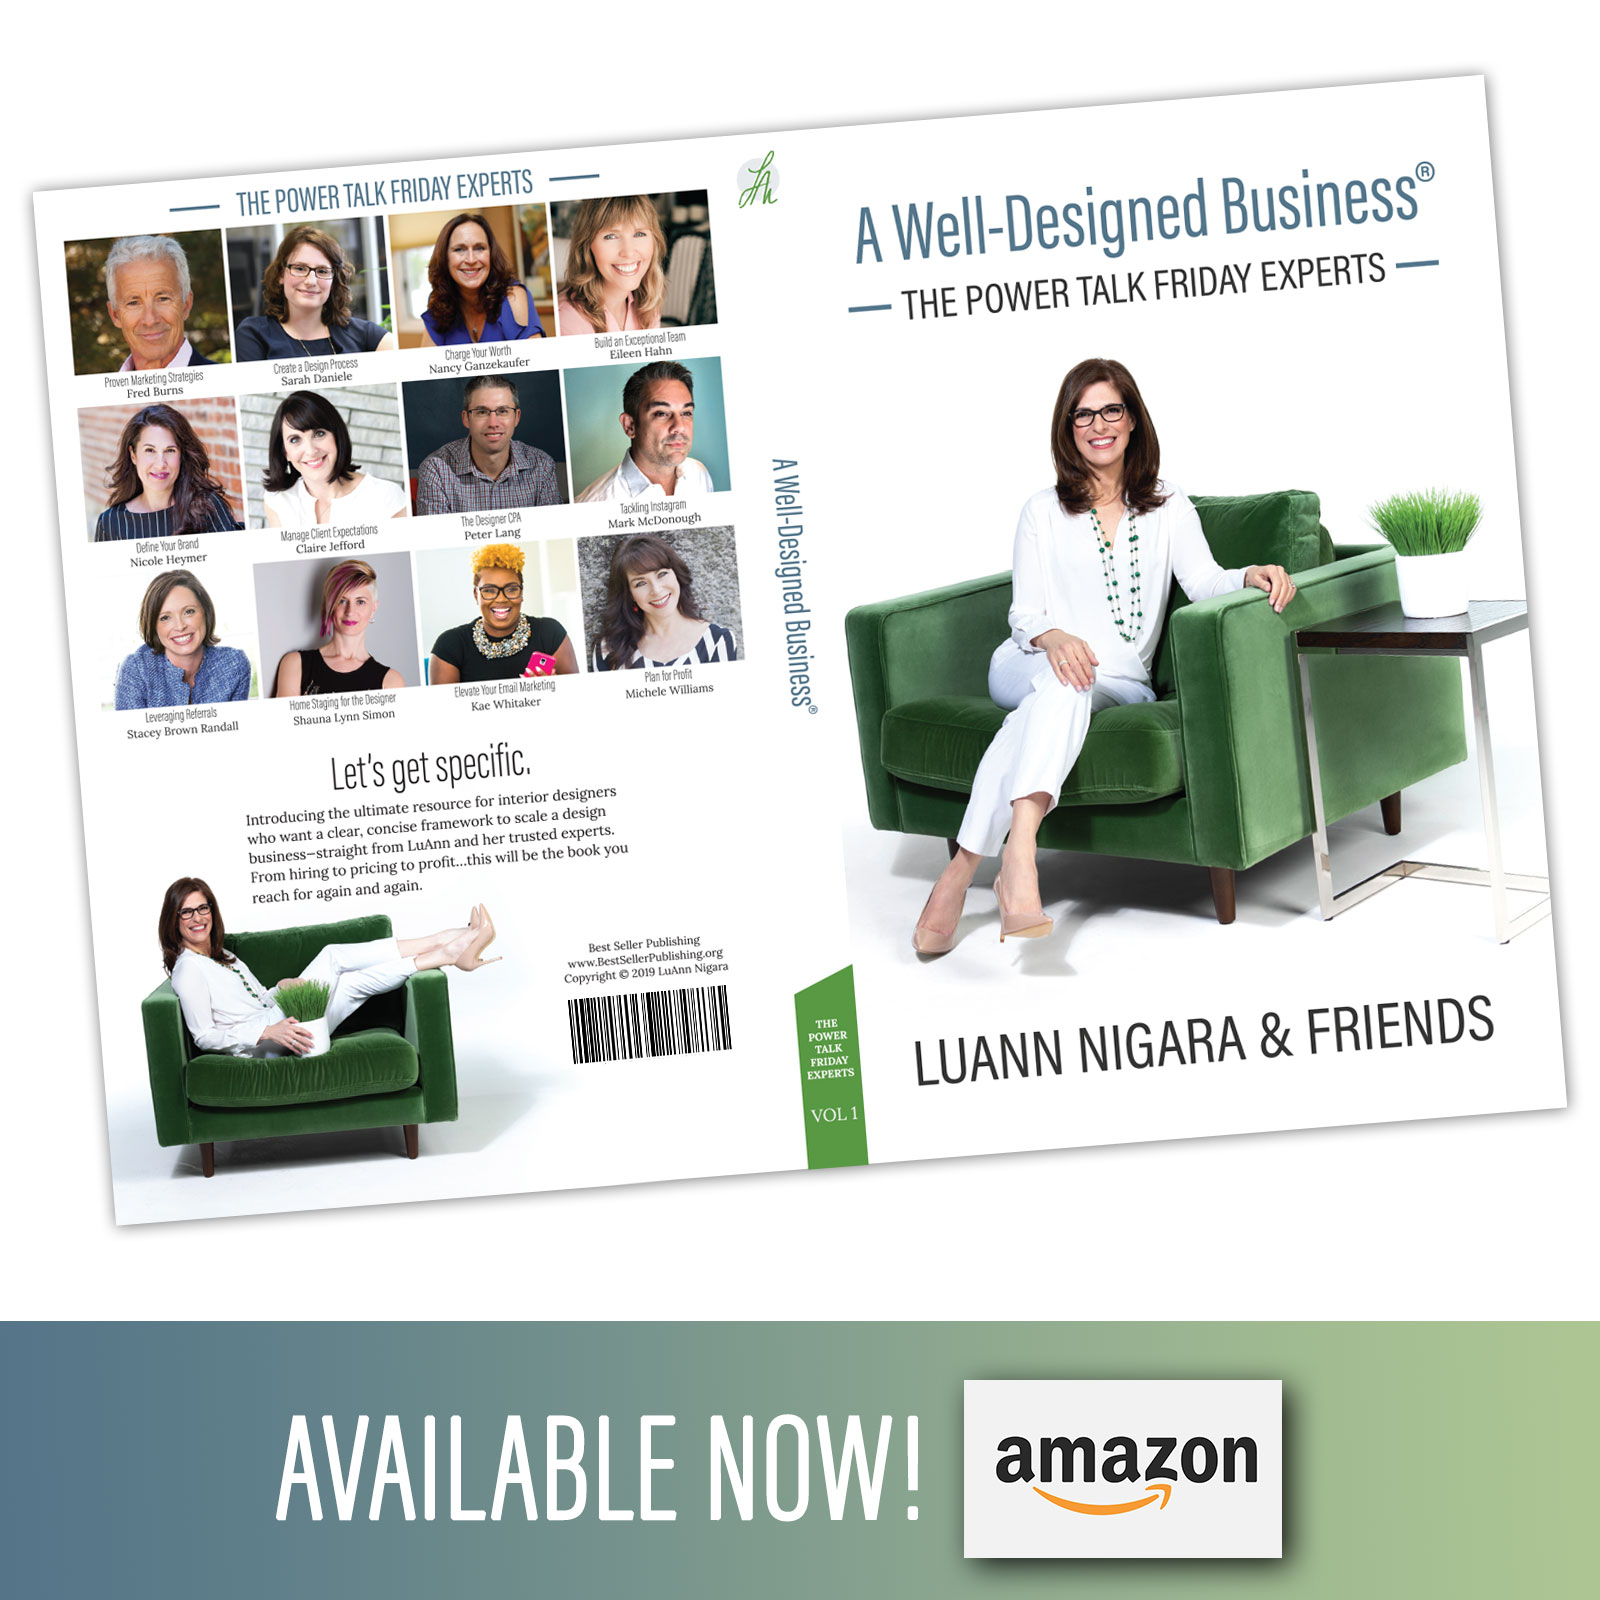 A Well Designed Business with LuAnn Nigara and friends including Nancy Ganzekaufer